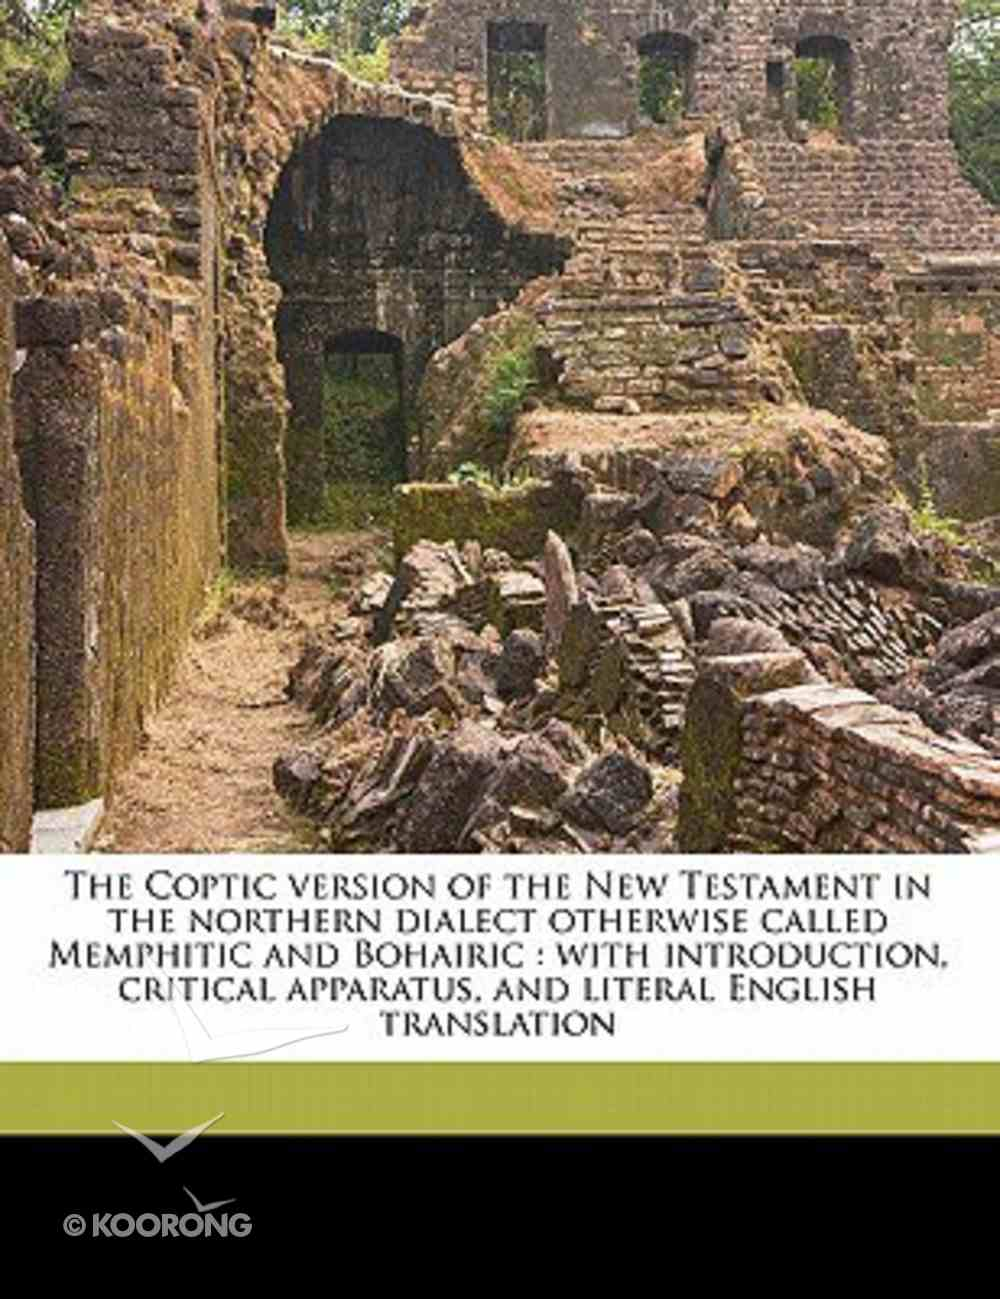 The Coptic Version of the New Testament in the Northern Dialect Paperback